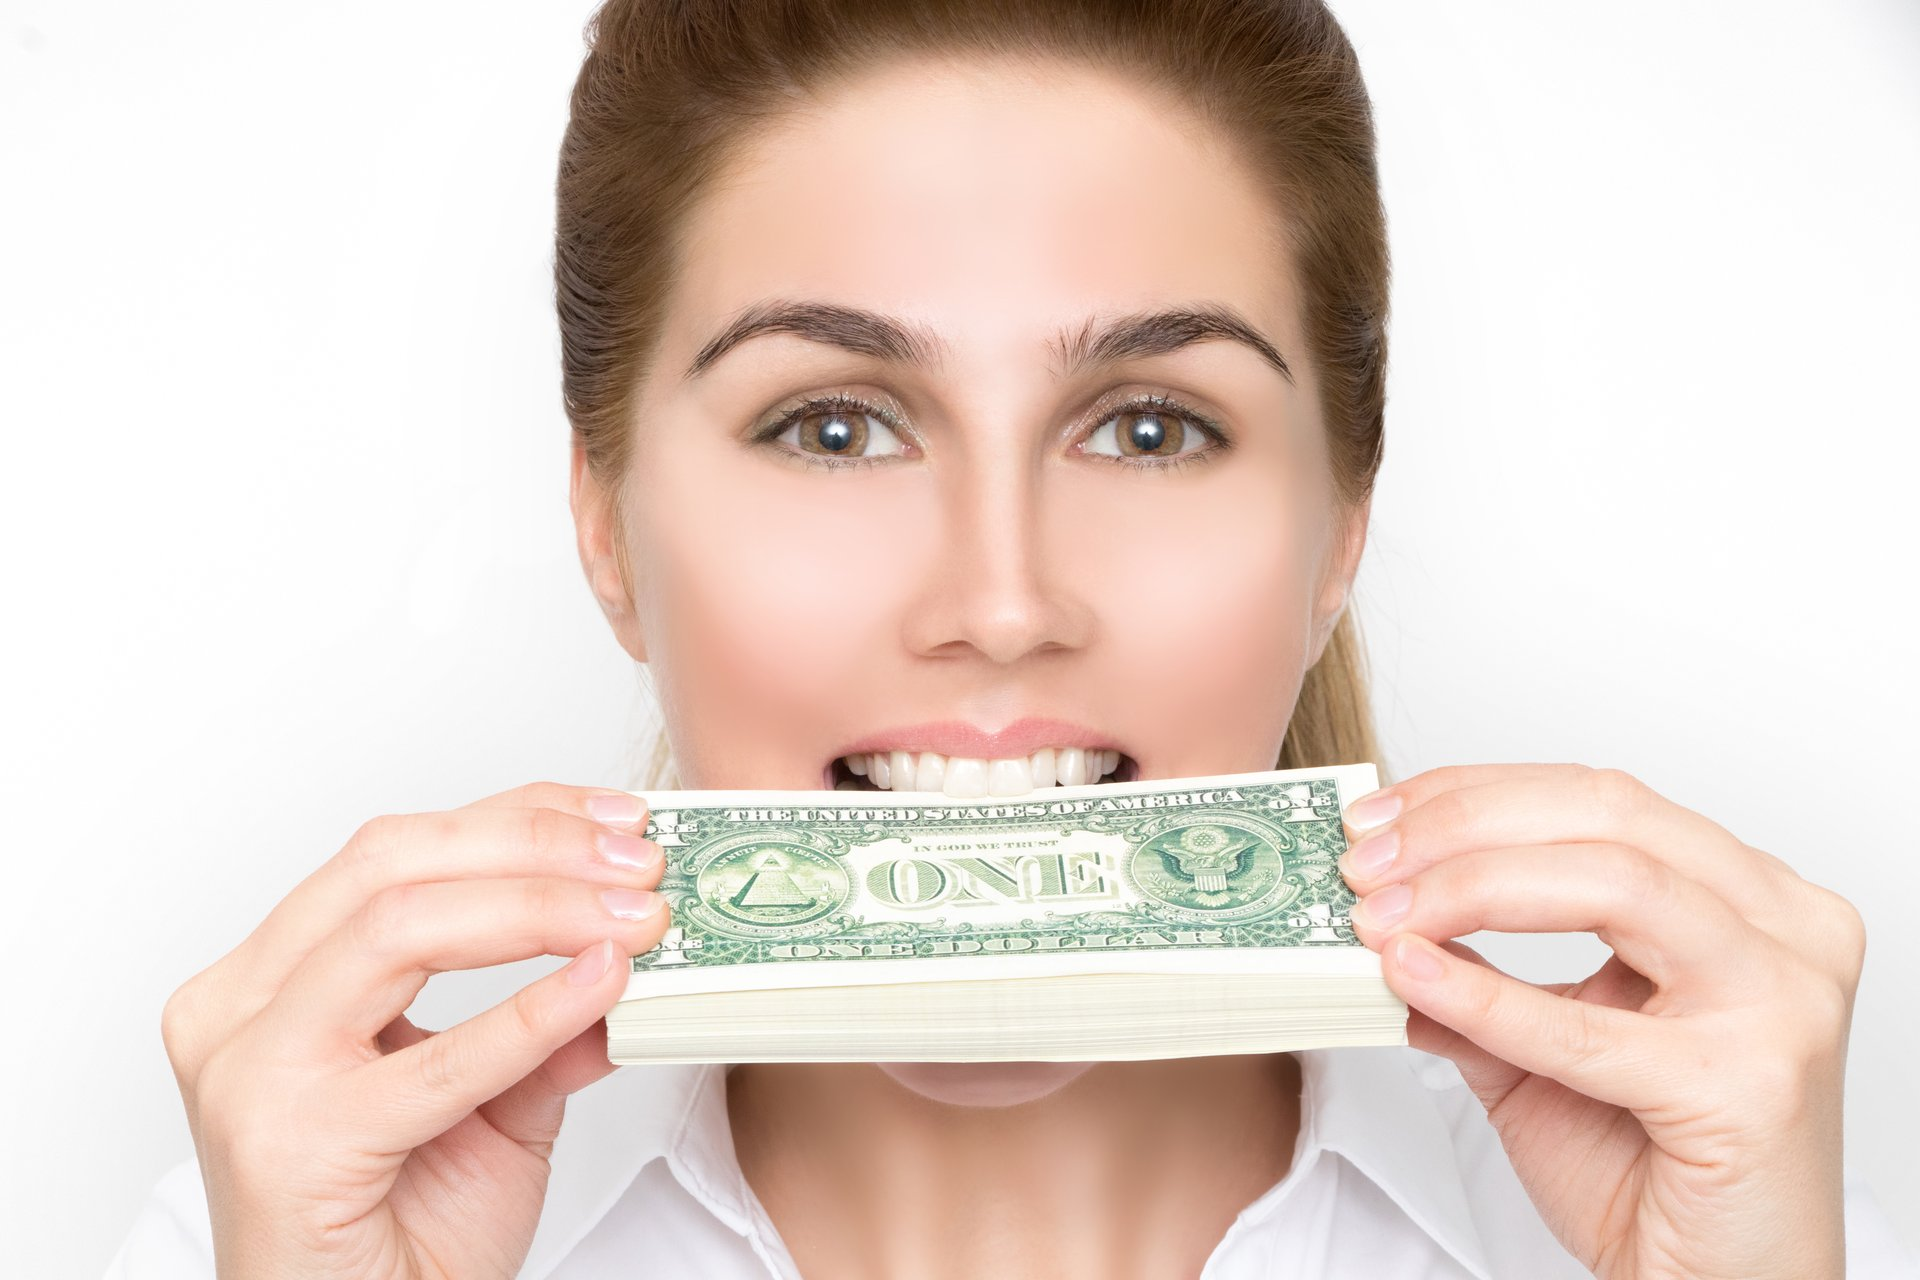 Smiling woman with money